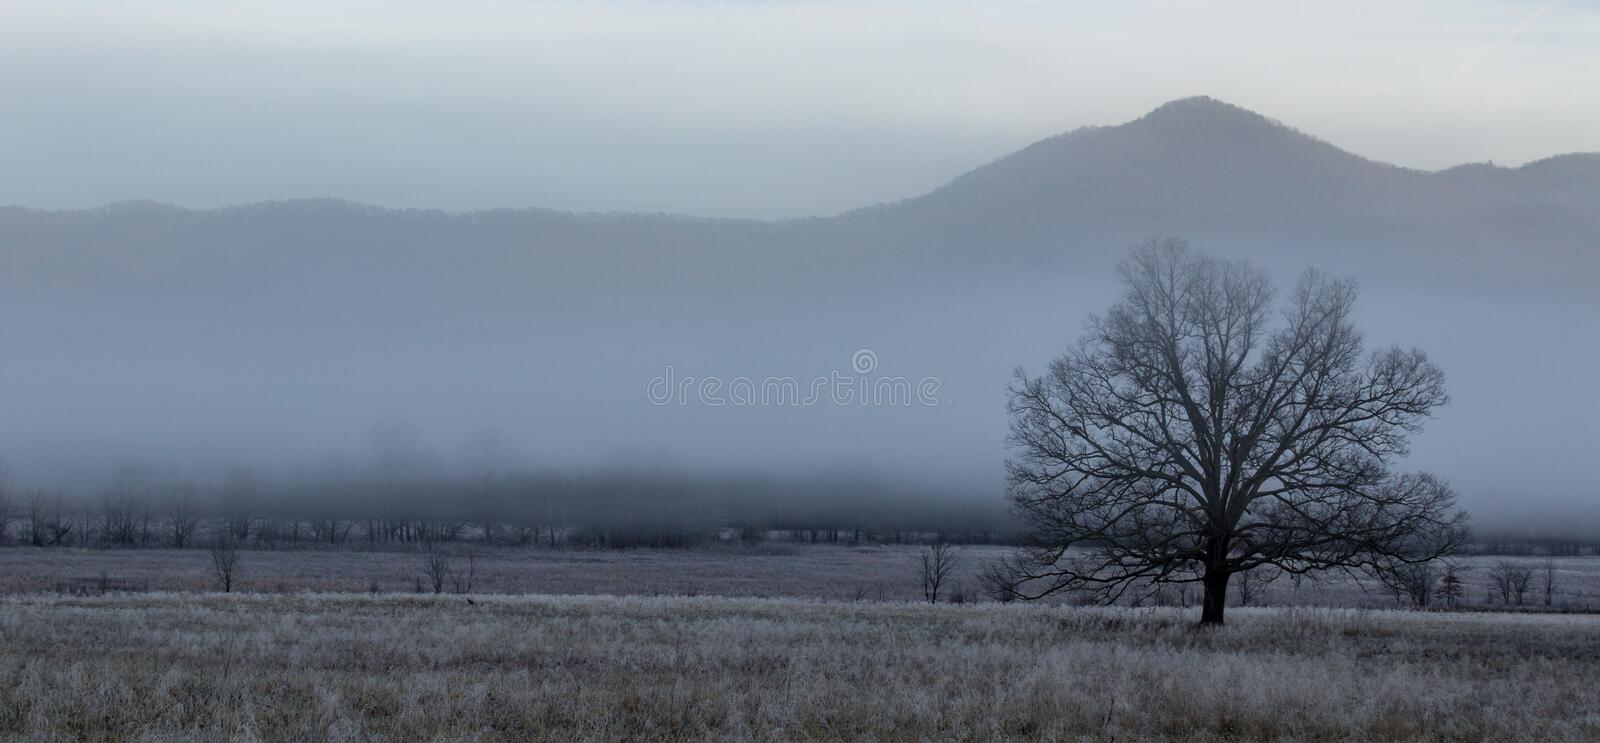 Foggy cades cove morning in great smoky mountains national park stock images